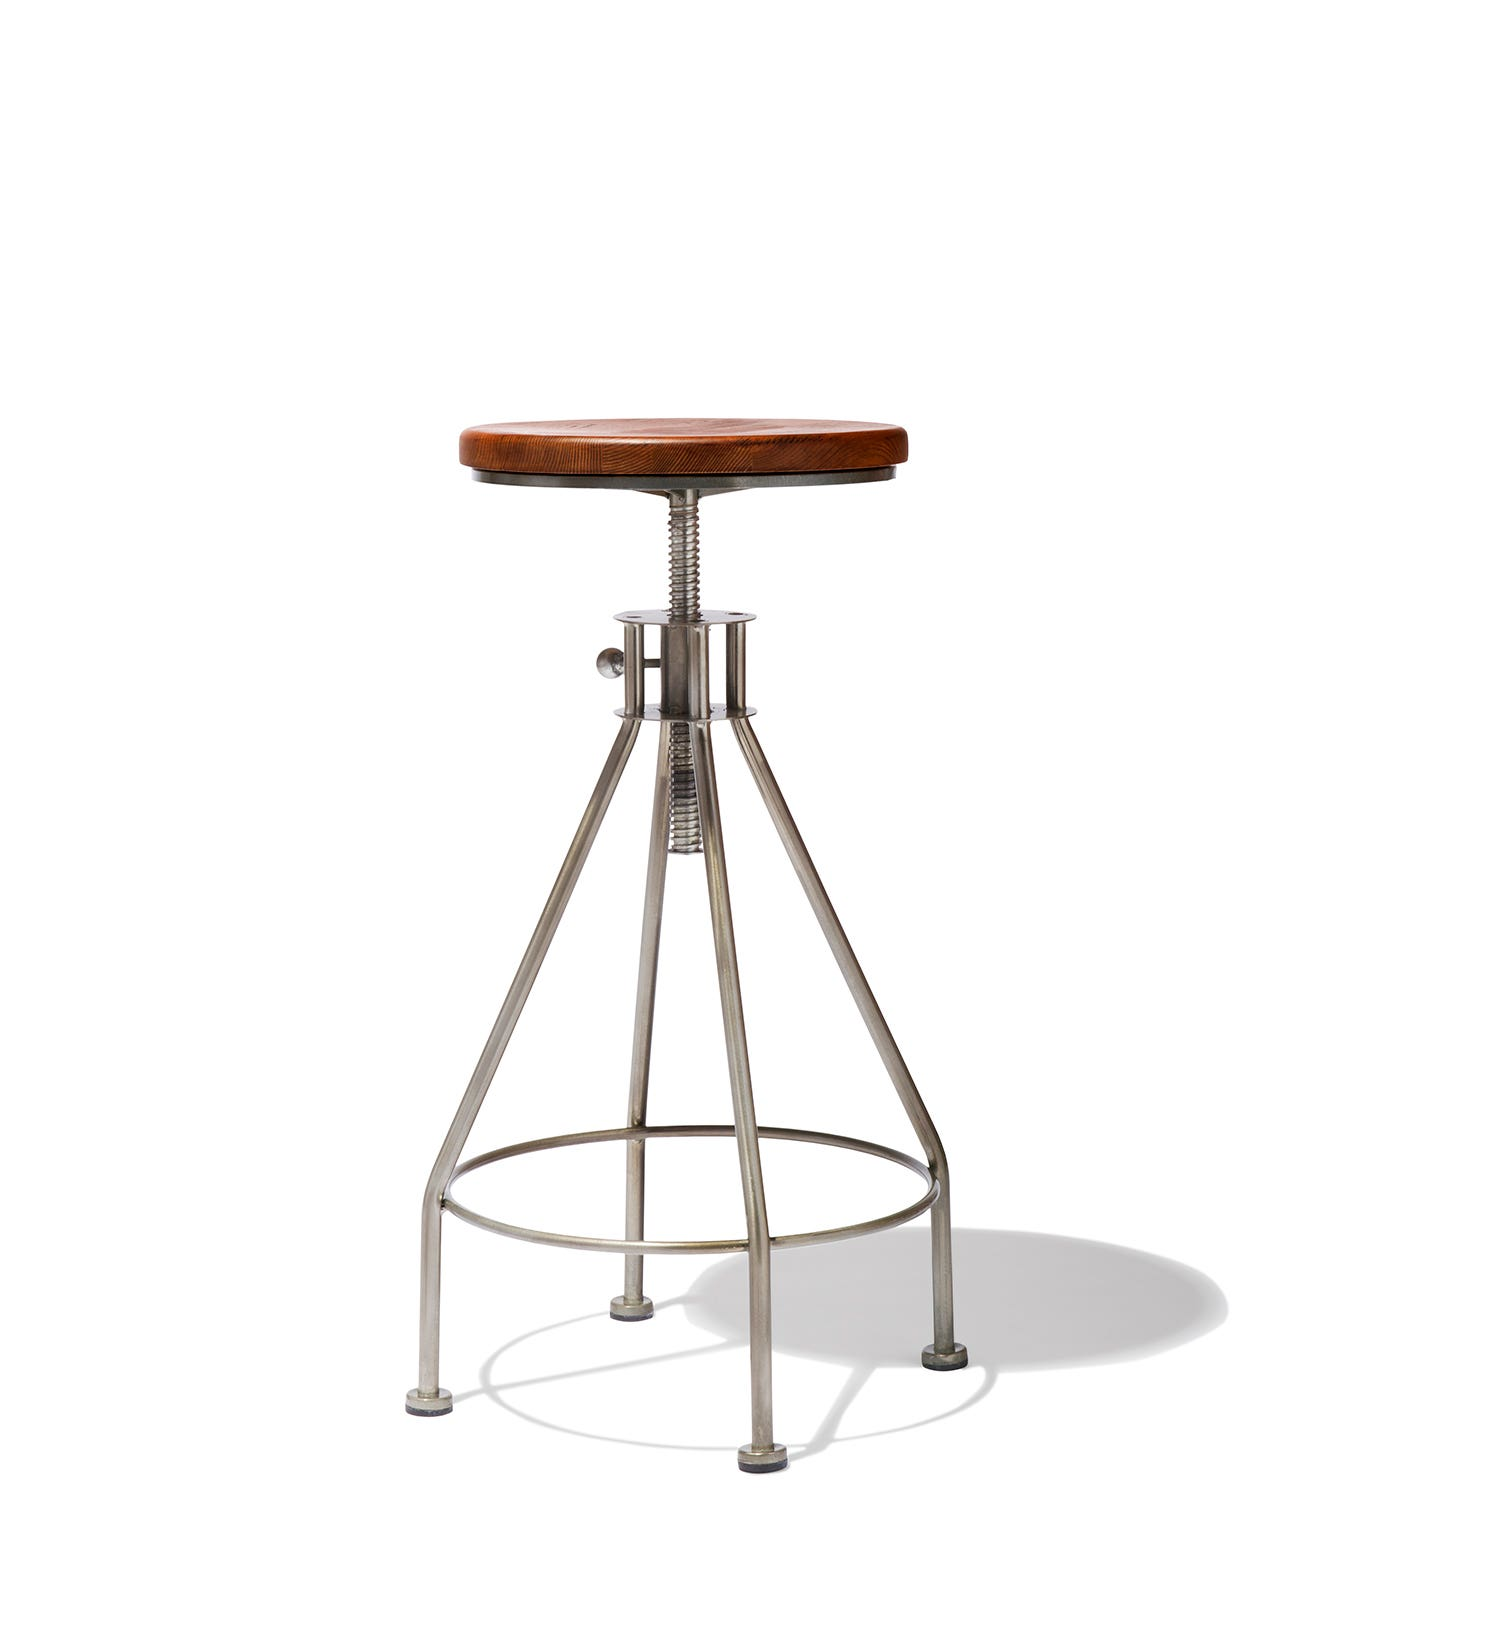 Industry West Task Bar Stool  sc 1 st  Industry West & Industrial Mid-Century and Modern Bar and Counter Stools for Home ... islam-shia.org